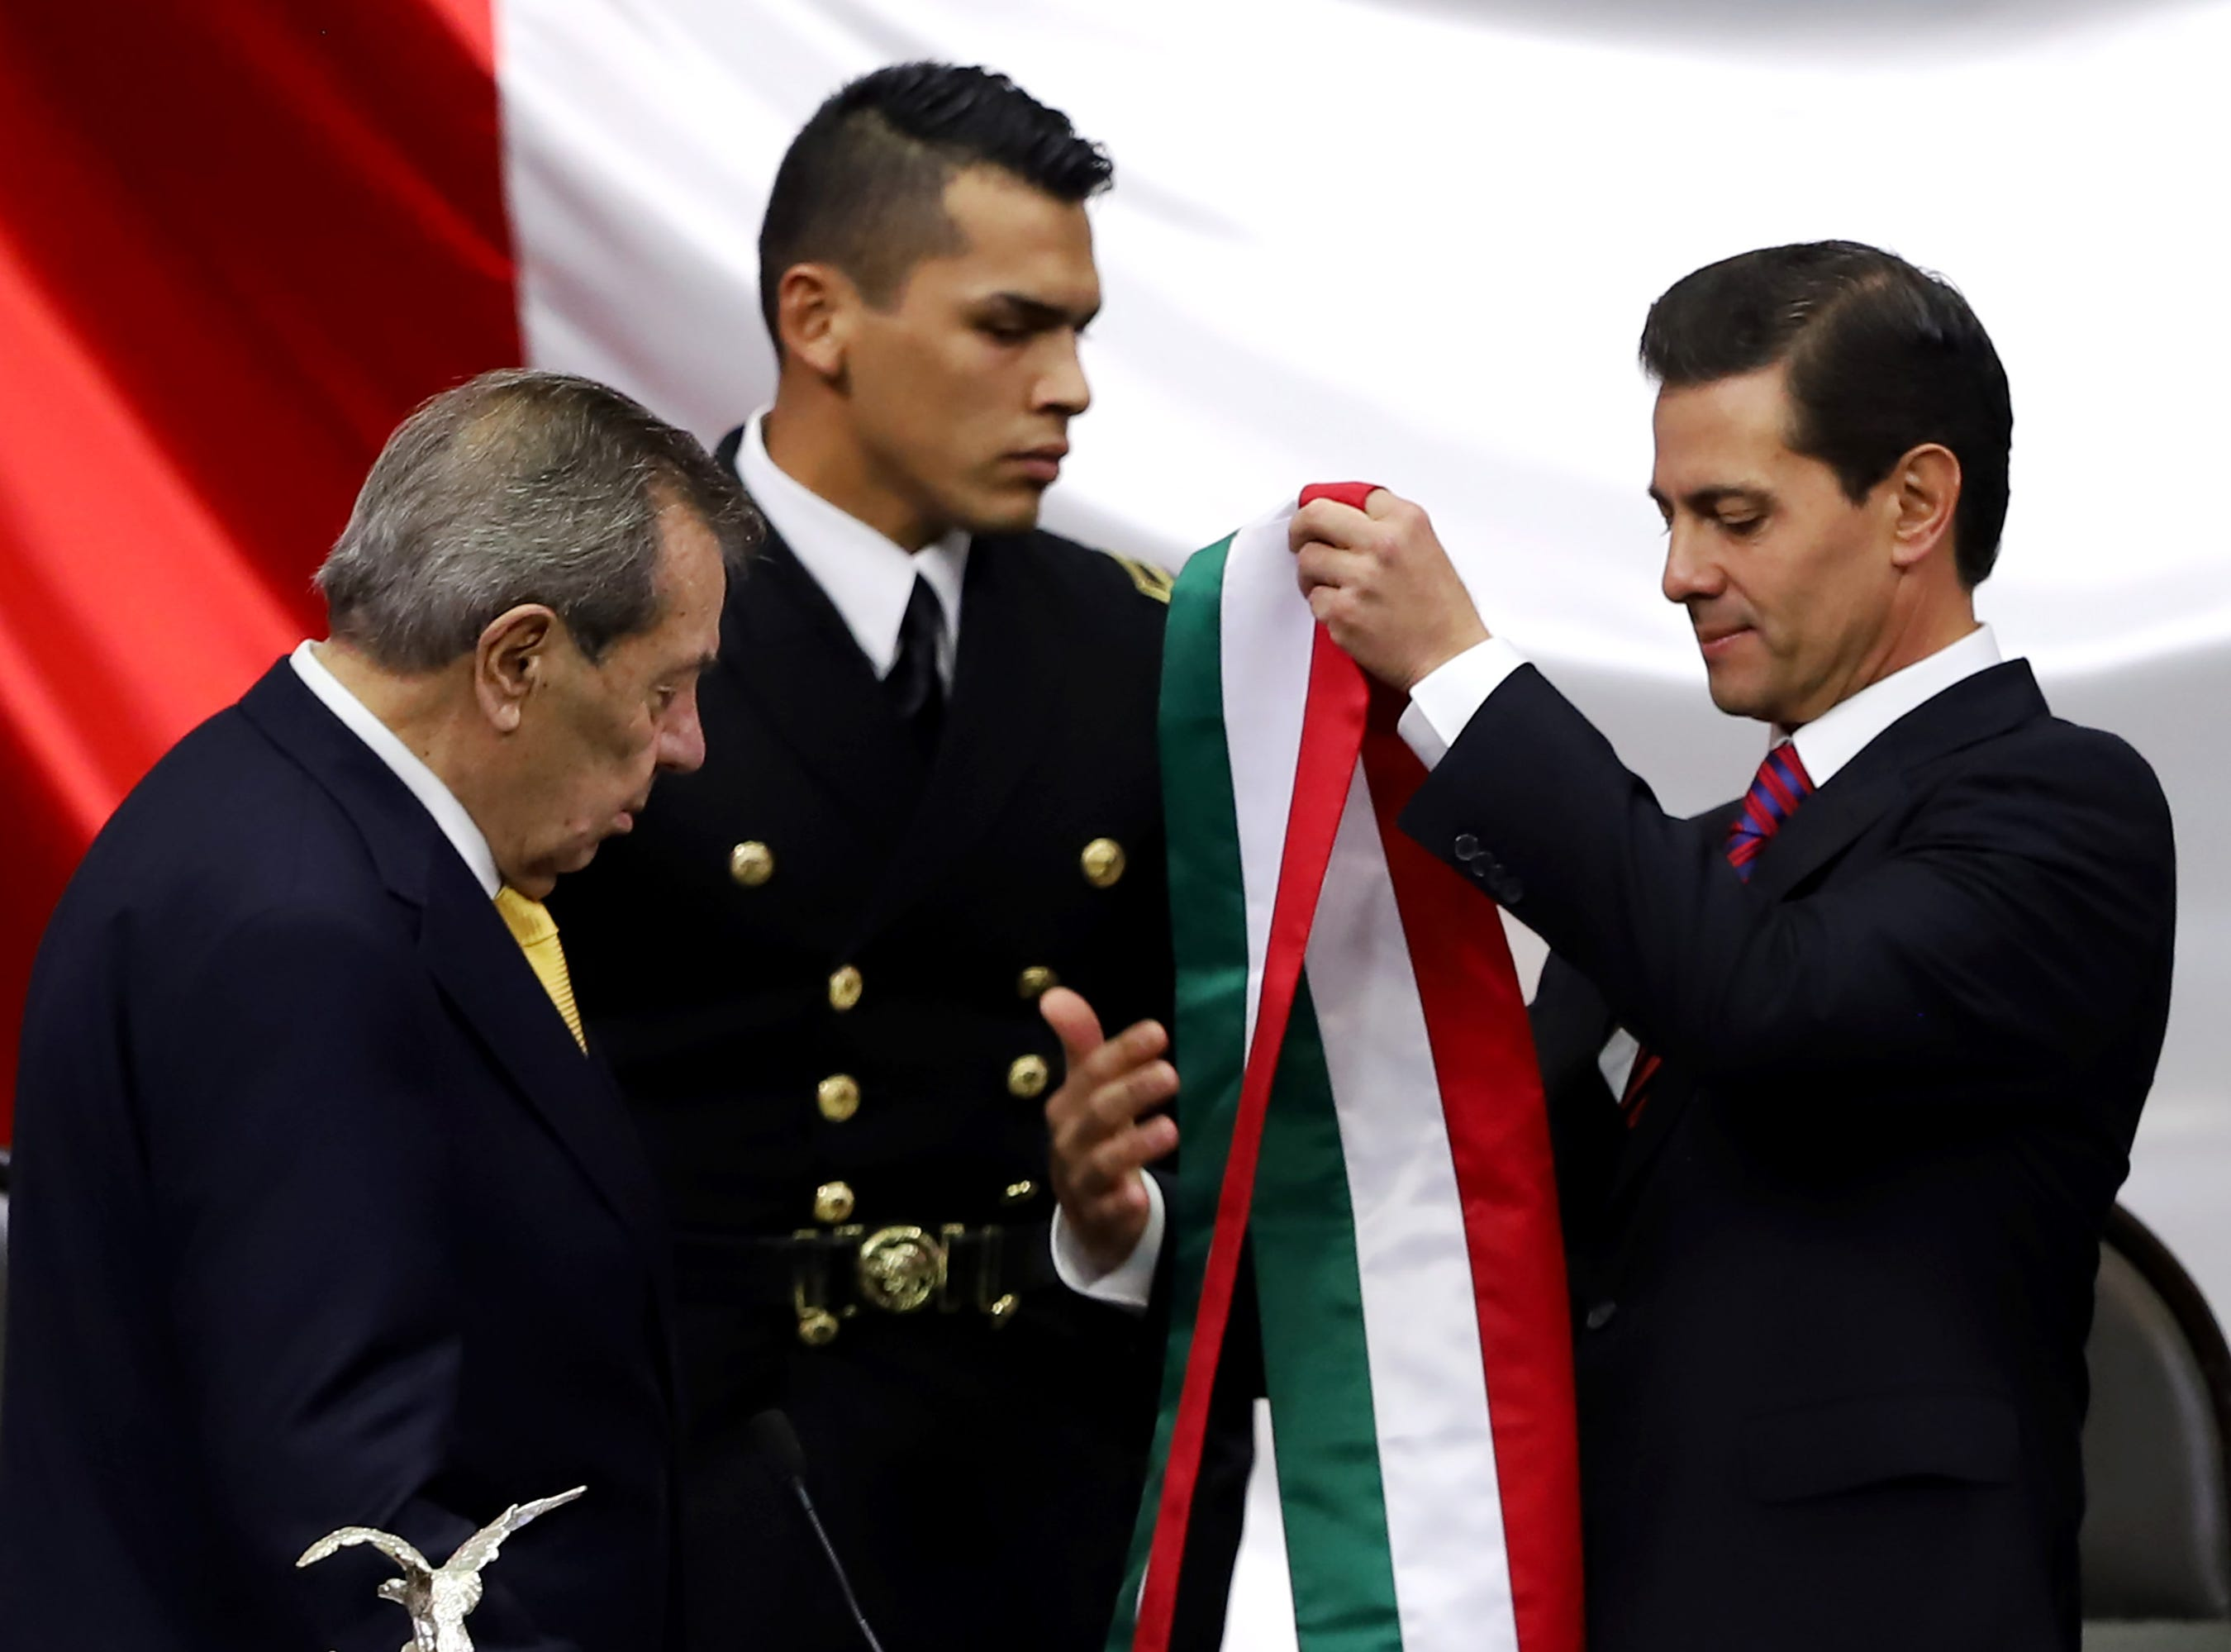 MEXICO CITY, MEXICO - DECEMBER 01: Outgoing Mexican President Enrique Peña Nieto (R) hands over the presidential sash to President of the Chamber of Deputies Porfirio Munoz Ledo (L) during the events of the Presidential Investiture as part of the 65th Mexico Presidential Inauguration at Congress of the Union on December 01, 2018 in Mexico City, Mexico. (Photo by Getty Images/Getty Images)